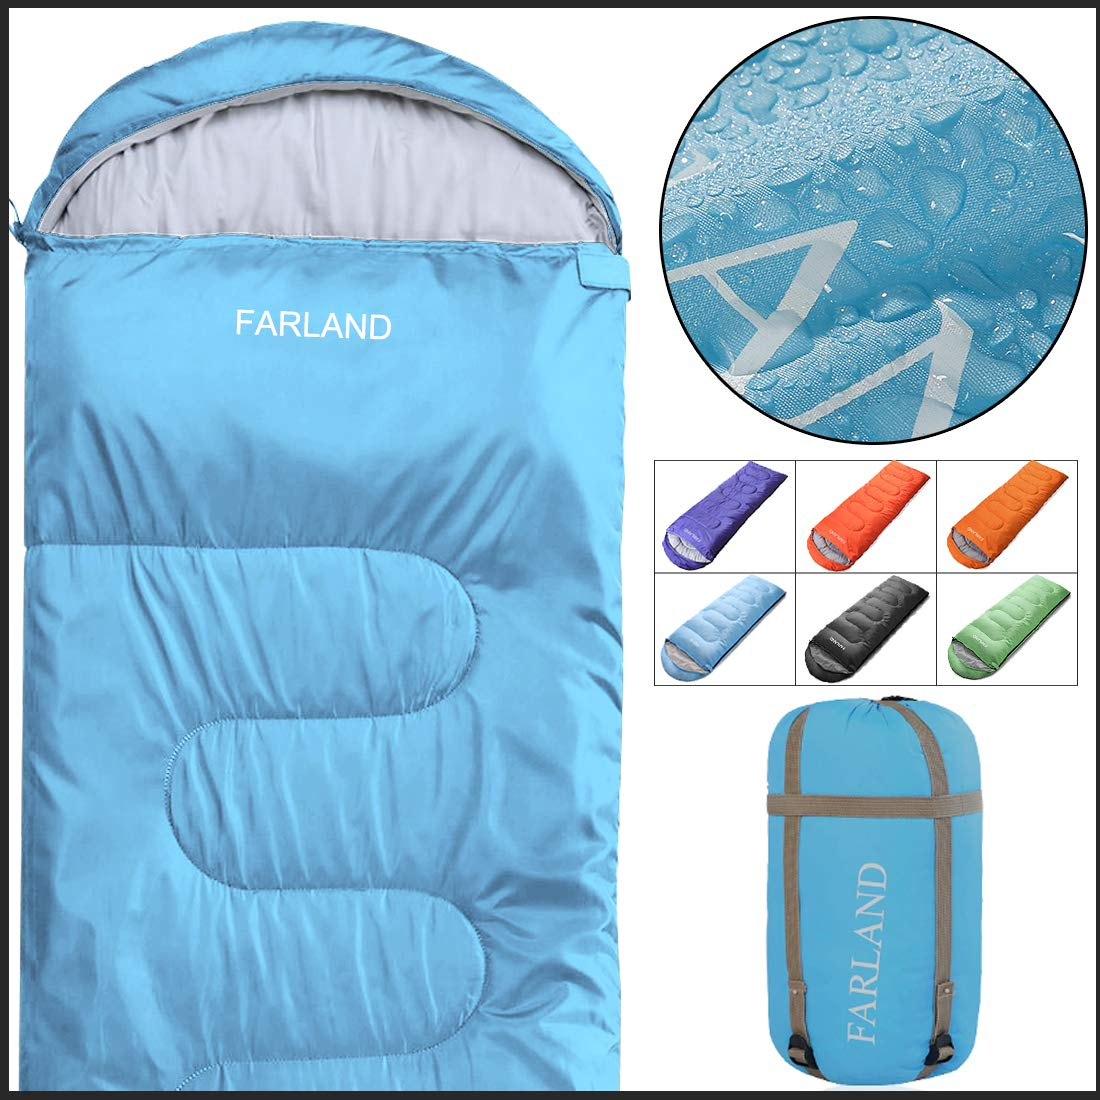 FARLAND Rectangular Sleeping Bag 0 Degree centigrade 20 Degree F,Cold Weather 4 Season for Adults, Youth, Kids, Unisex for Camping, Hiking, Waterproof, Traveling, Backpacking and Outdoors by FARLAND